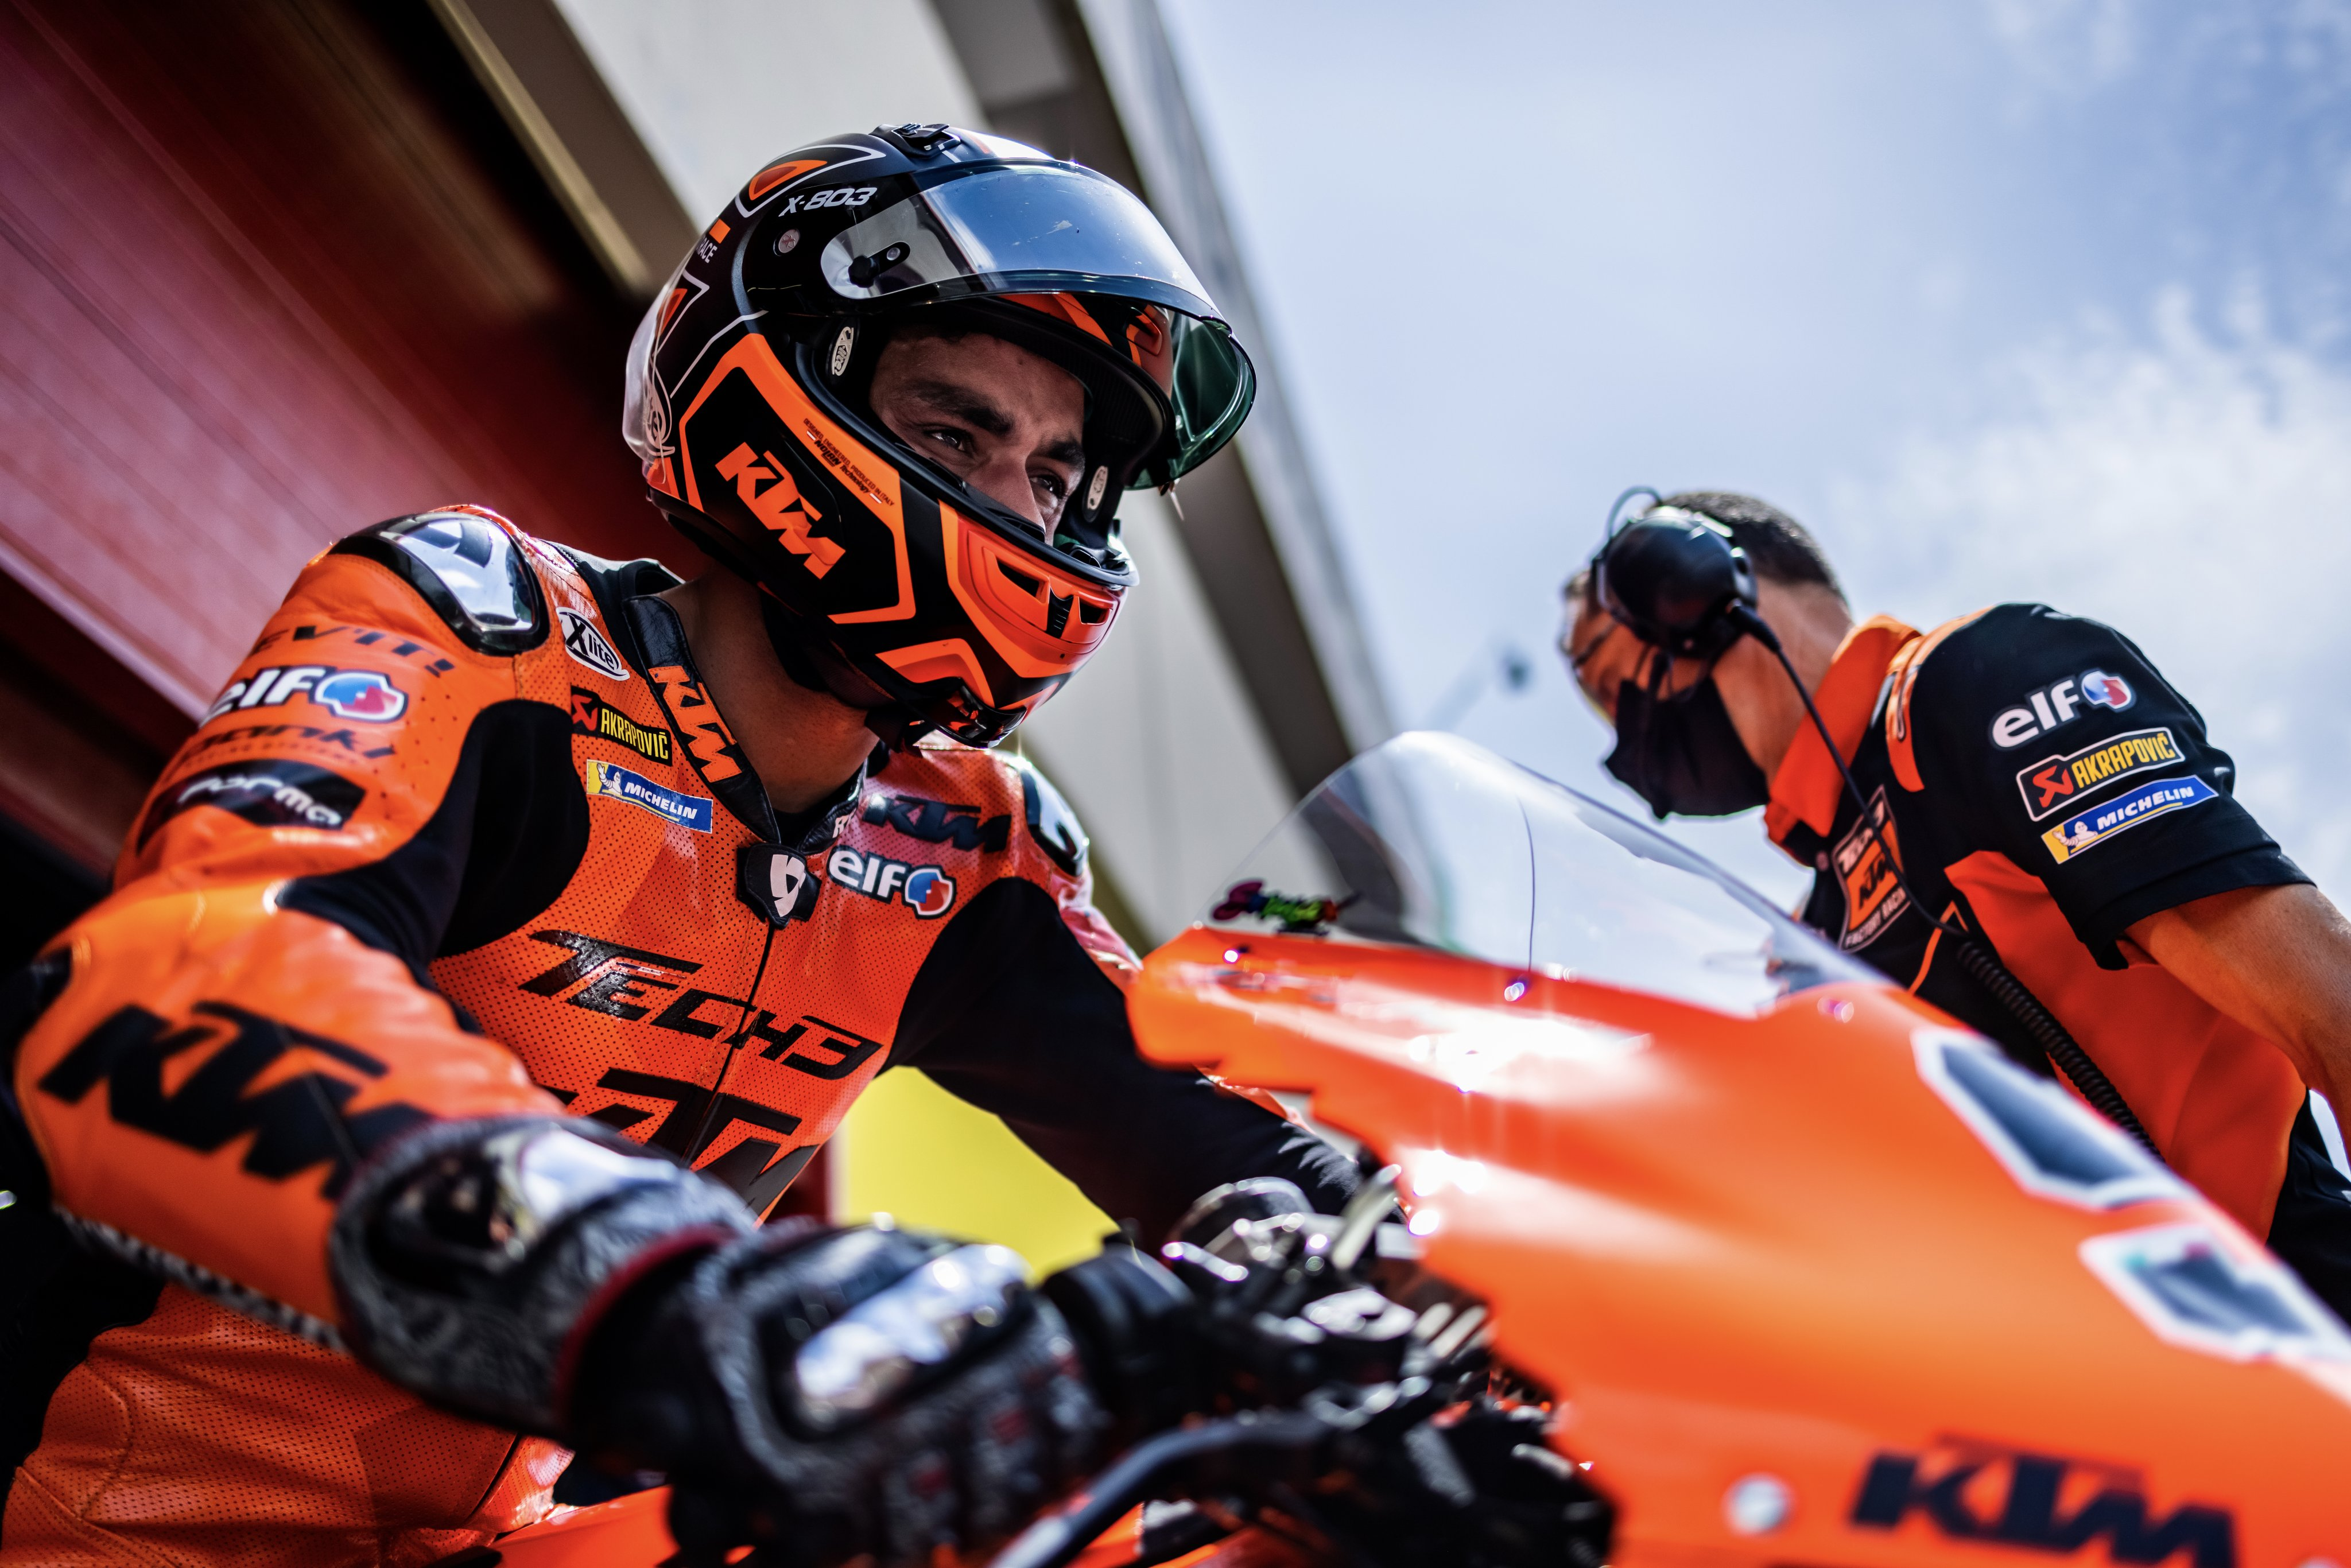 Ktm Factory Racing On Twitter Best Qualification Of The 2021 Motogp Season So Far Brad Binder Takes 6th Equaling The Top Speed Record With 362 4 Kmph On The Ktm Rc16 And Miguel